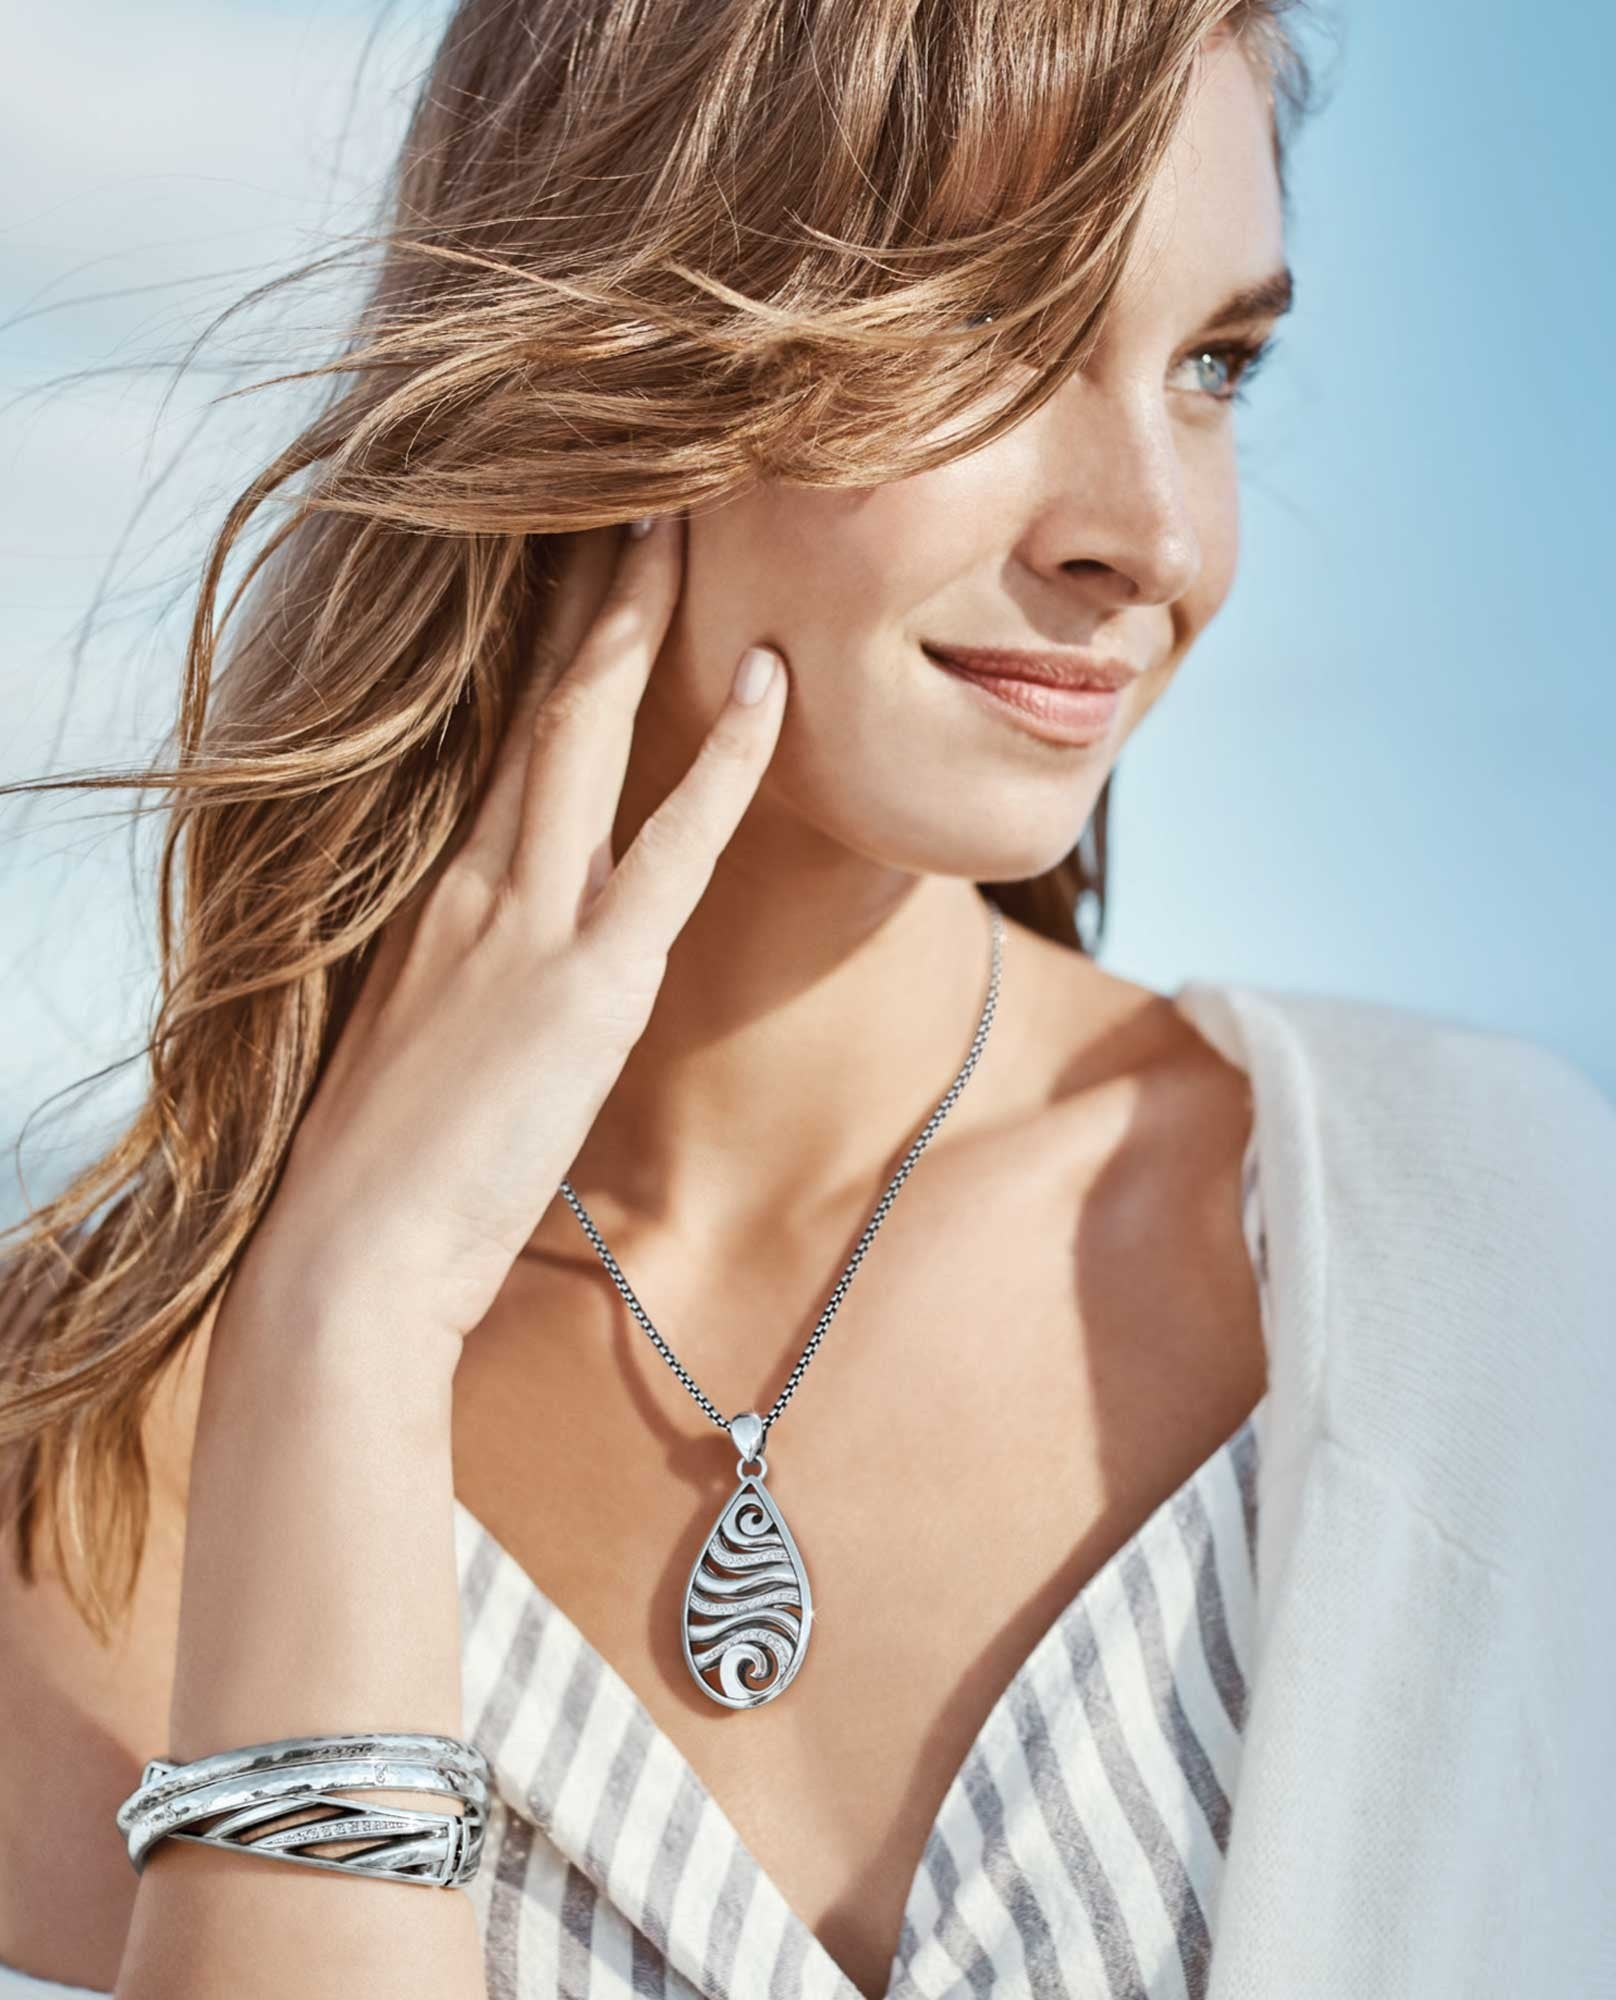 Brighton Jewelry & Accessories